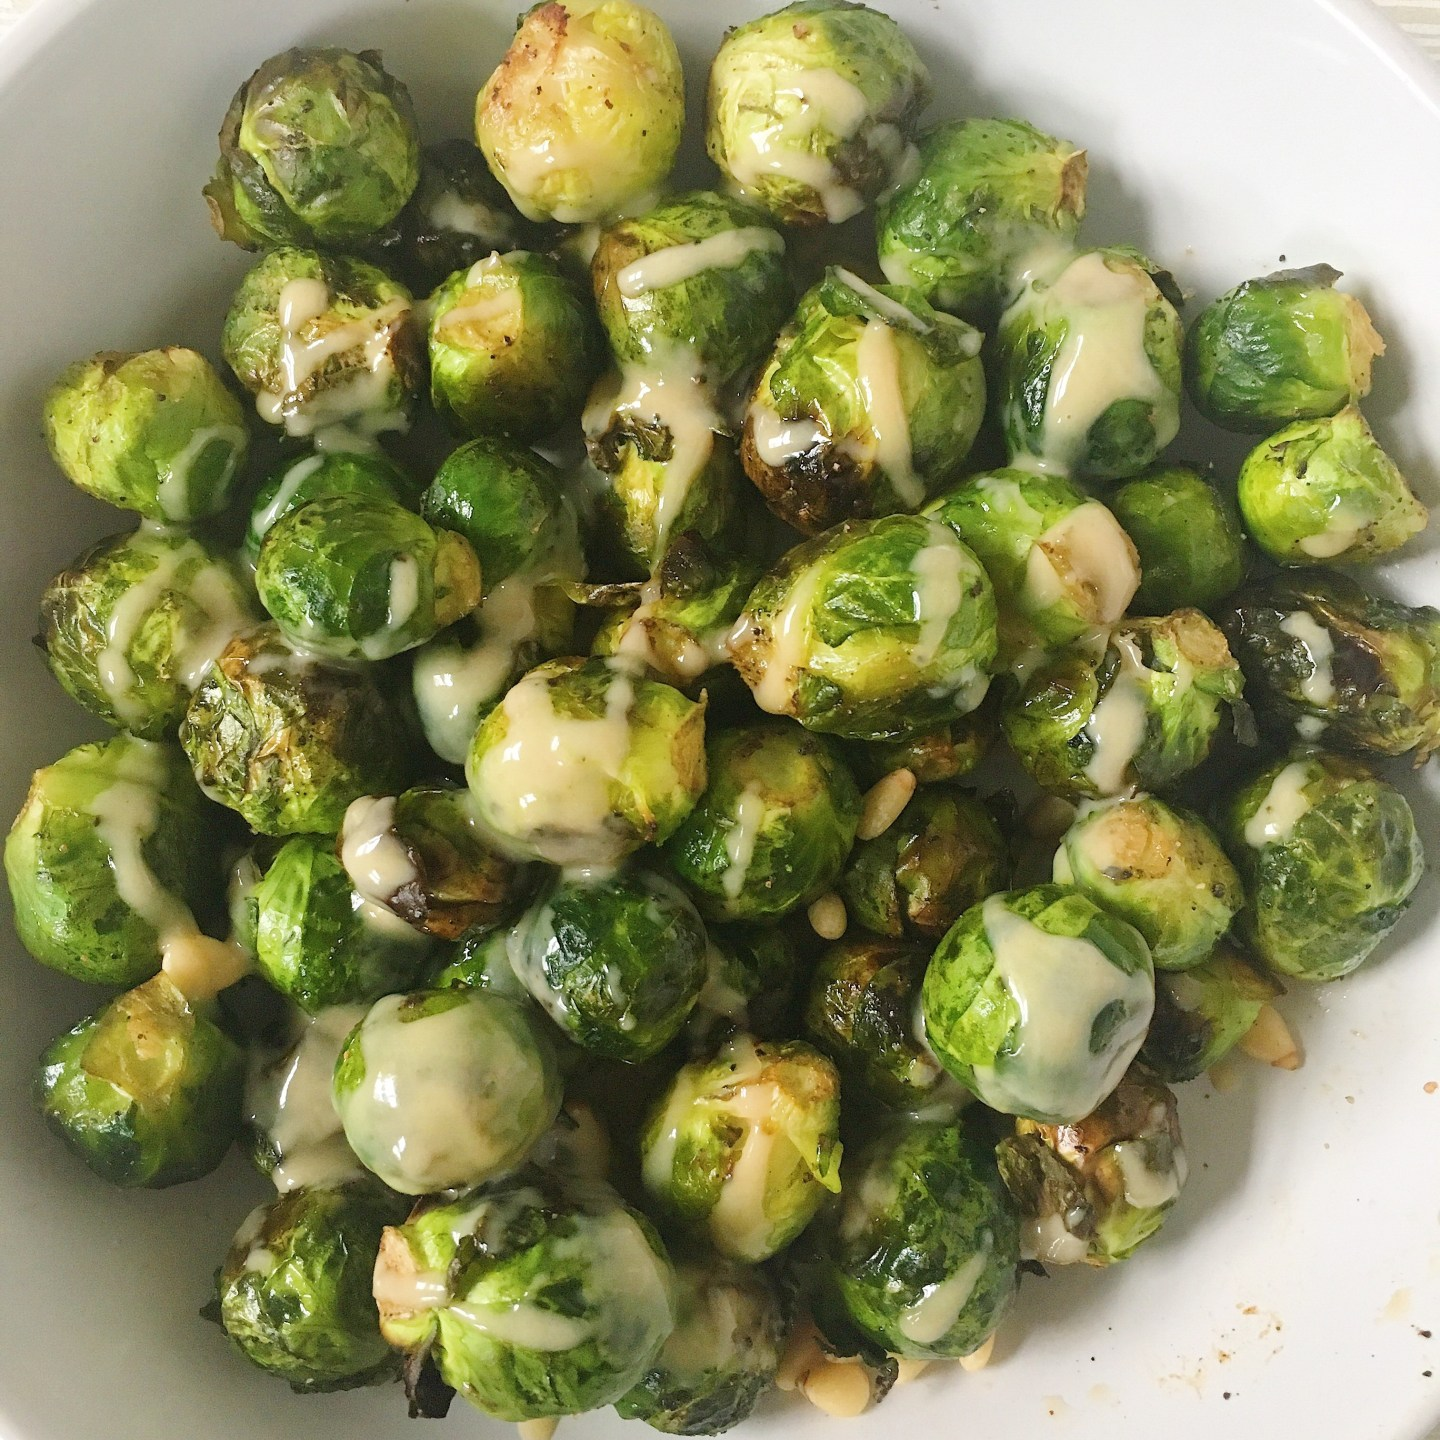 CRISPY BRUSSELS SPROUTS WITH TAHINI DRESSING